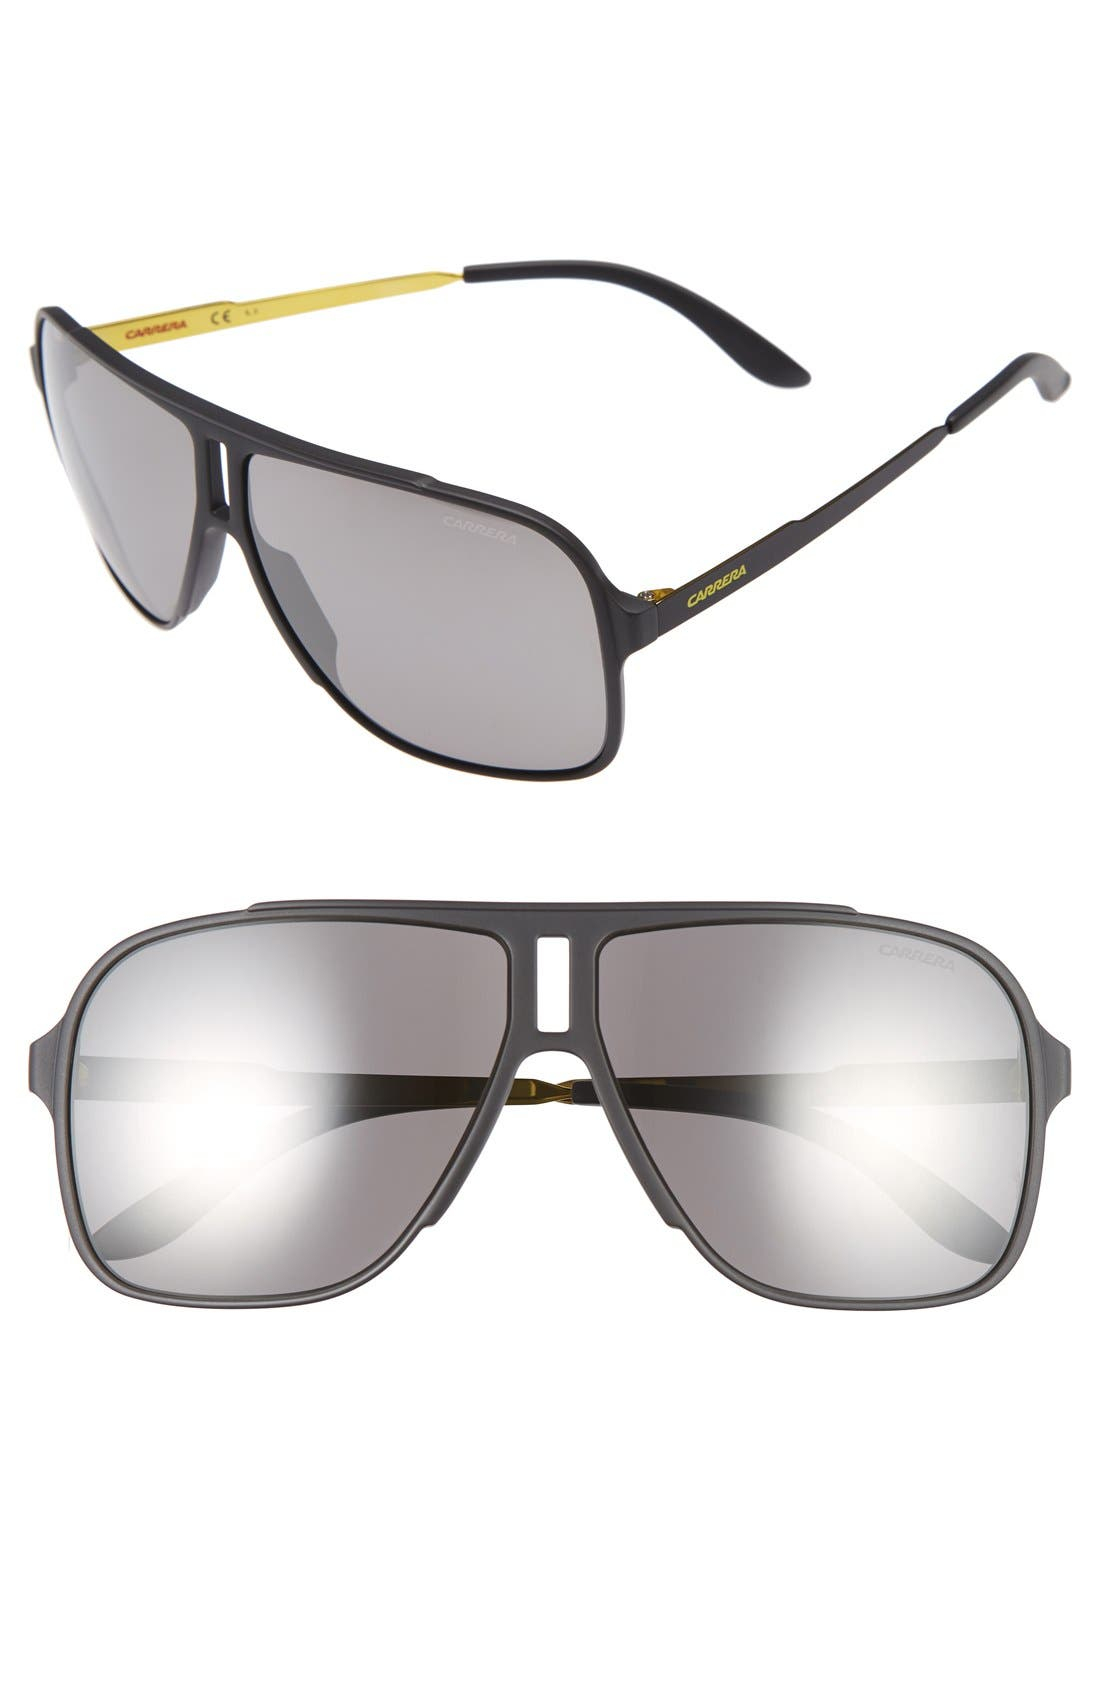 Carrera Eyewear 61mm Sunglasses